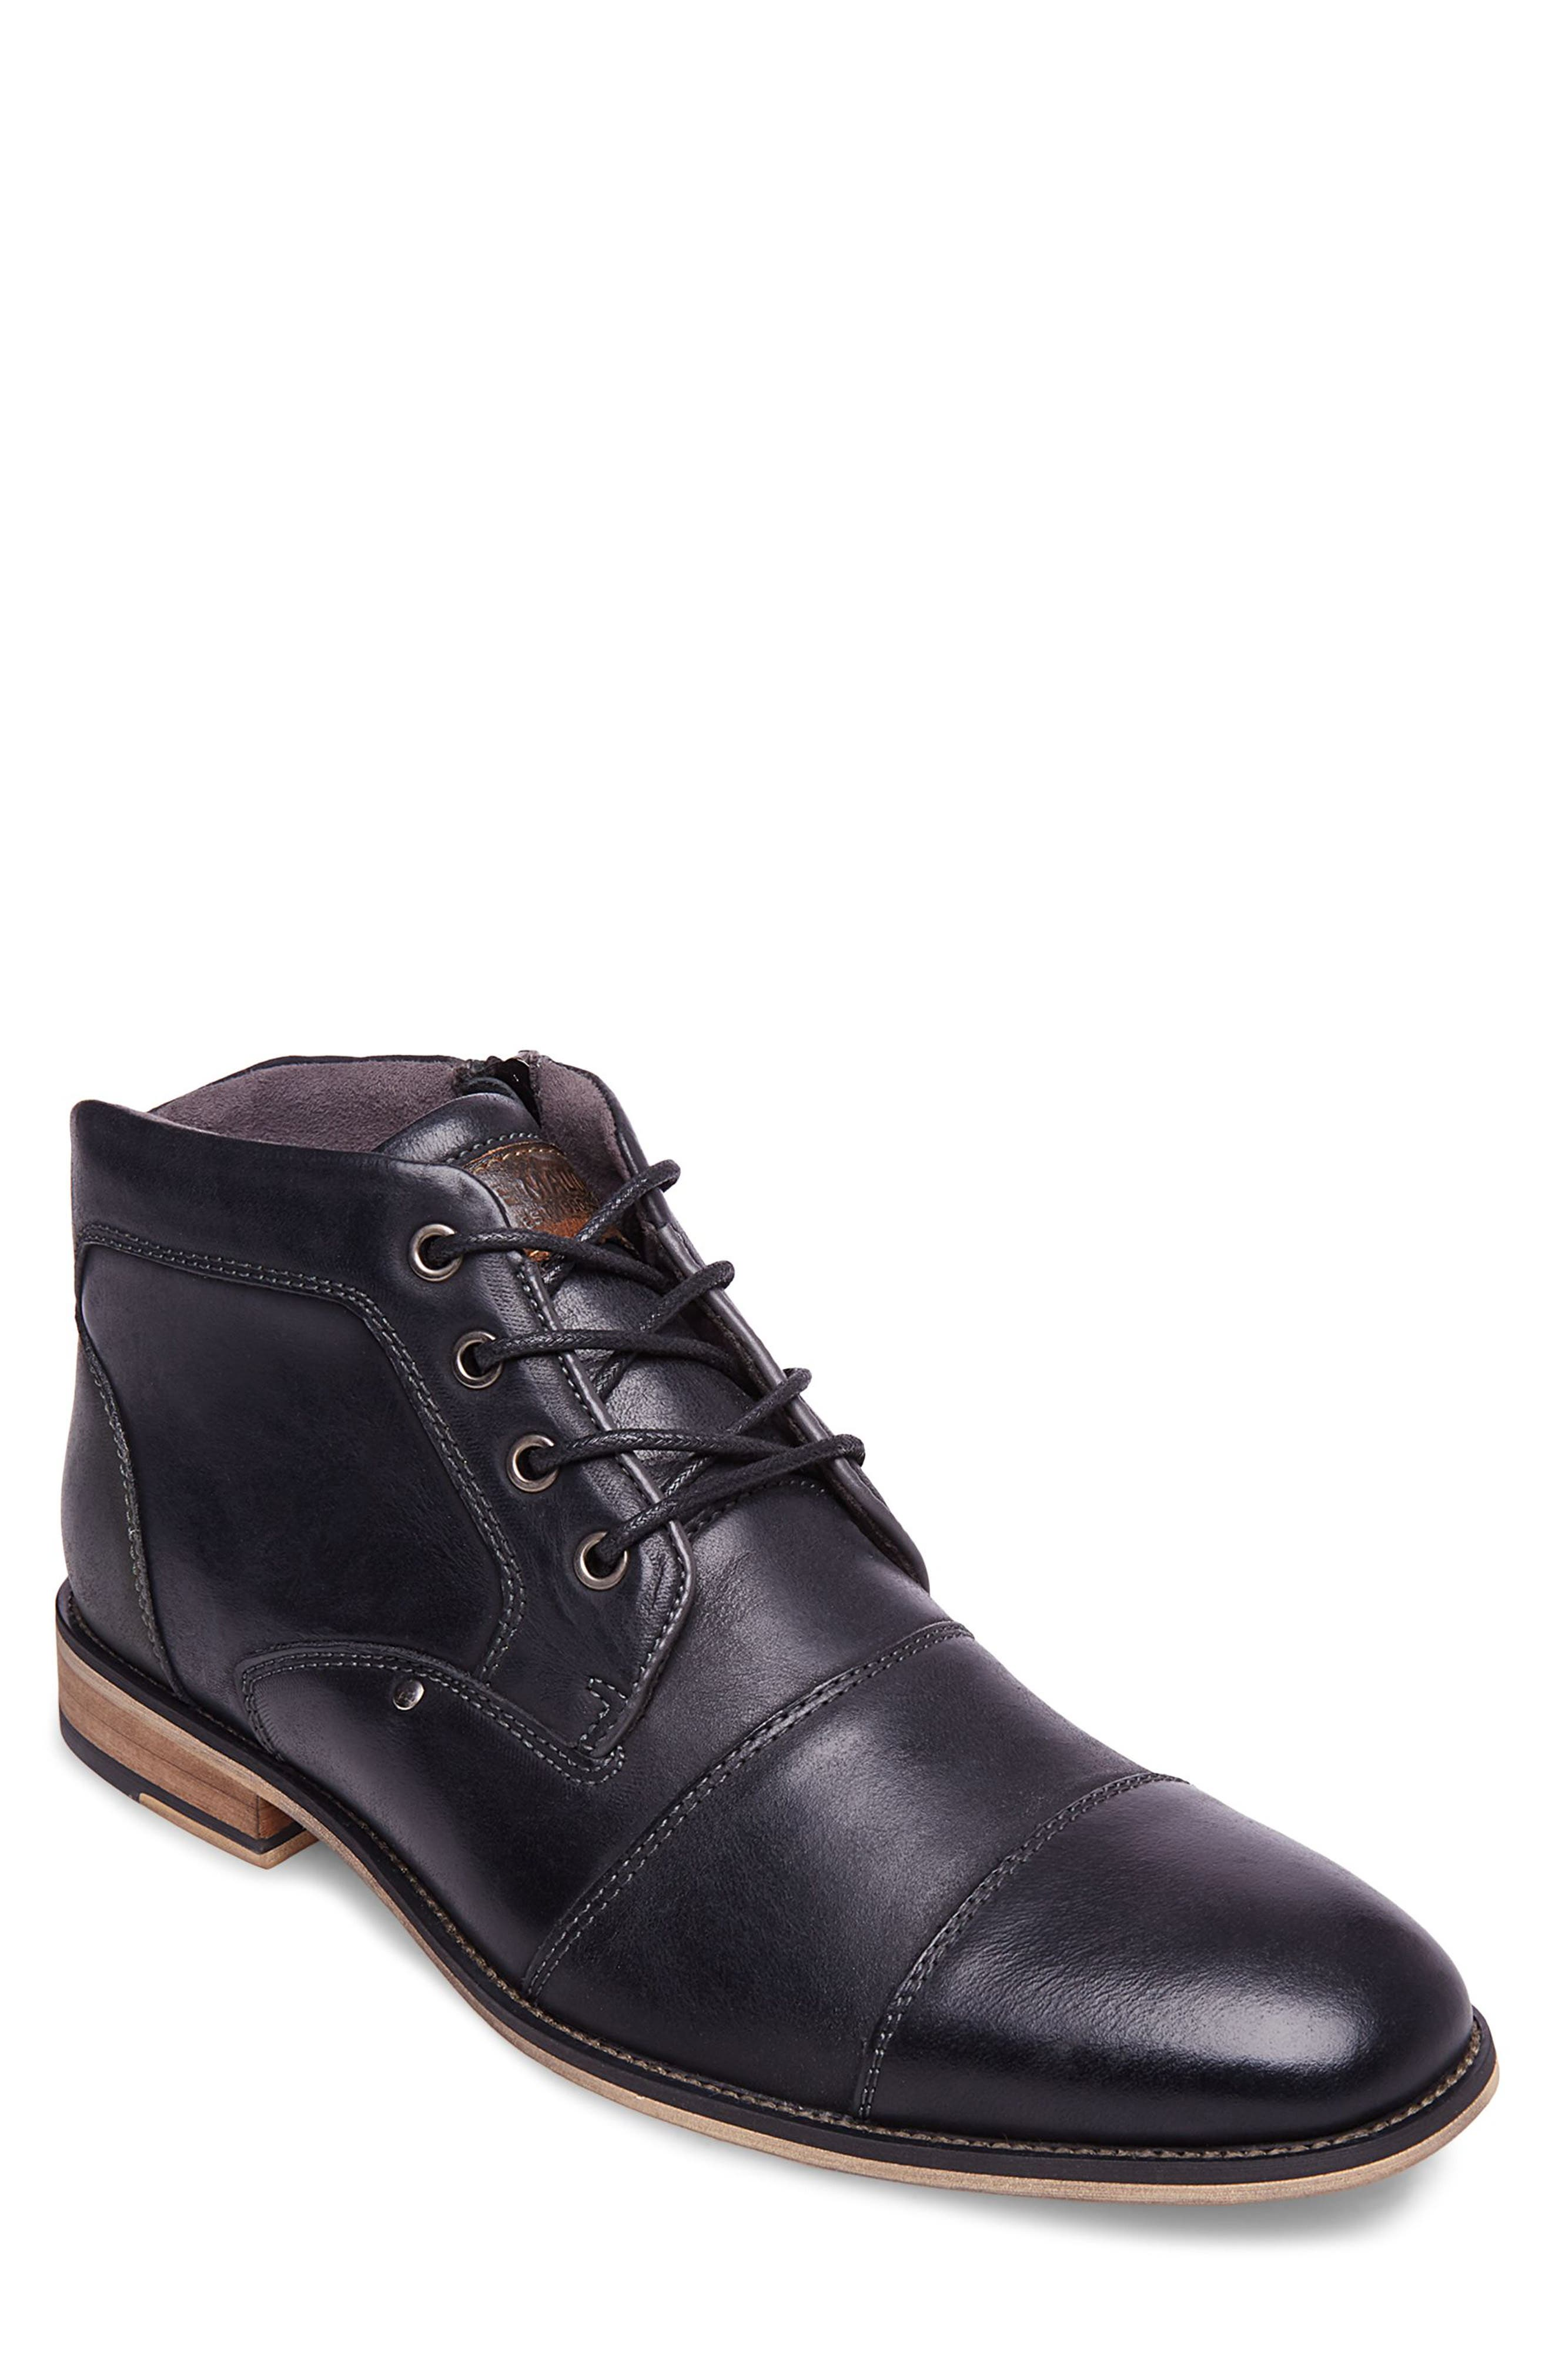 Steve Madden Johnnie Cap Toe Boot, Black